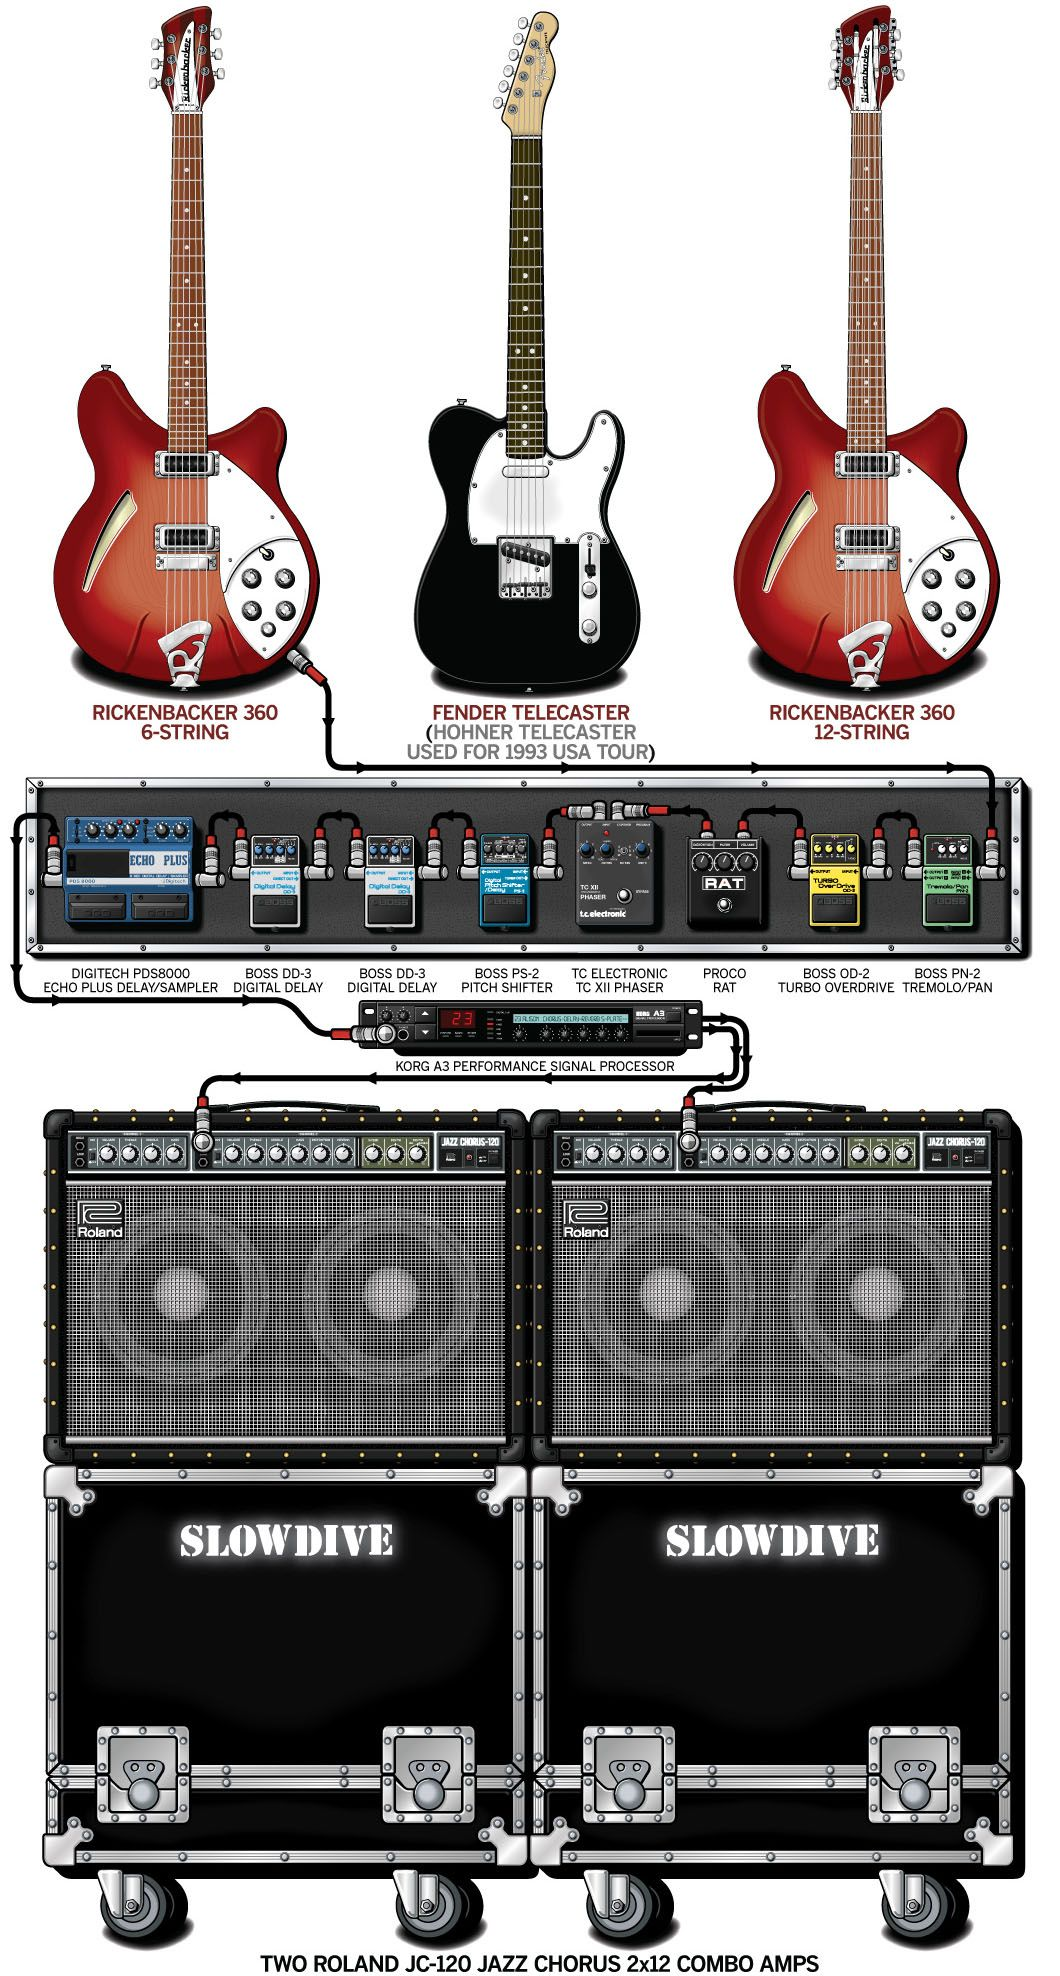 neil halstead of slowdive 39 s guitar rig circa souvlaki shoegaze guitar rig guitar. Black Bedroom Furniture Sets. Home Design Ideas